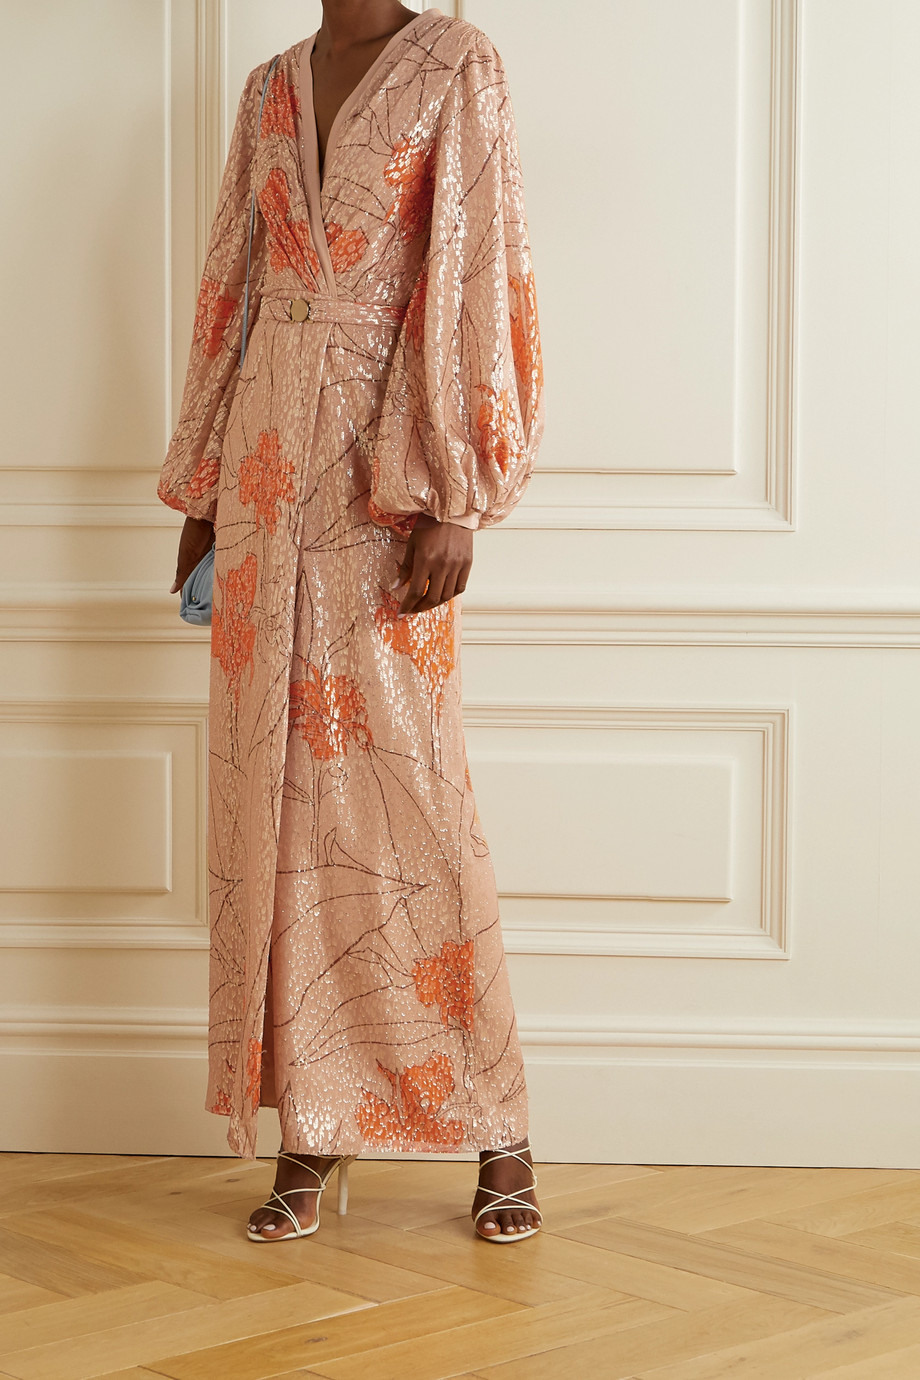 Johanna Ortiz + NET SUSTAIN Bella Illusion belted printed fil coupé silk-blend maxi dress